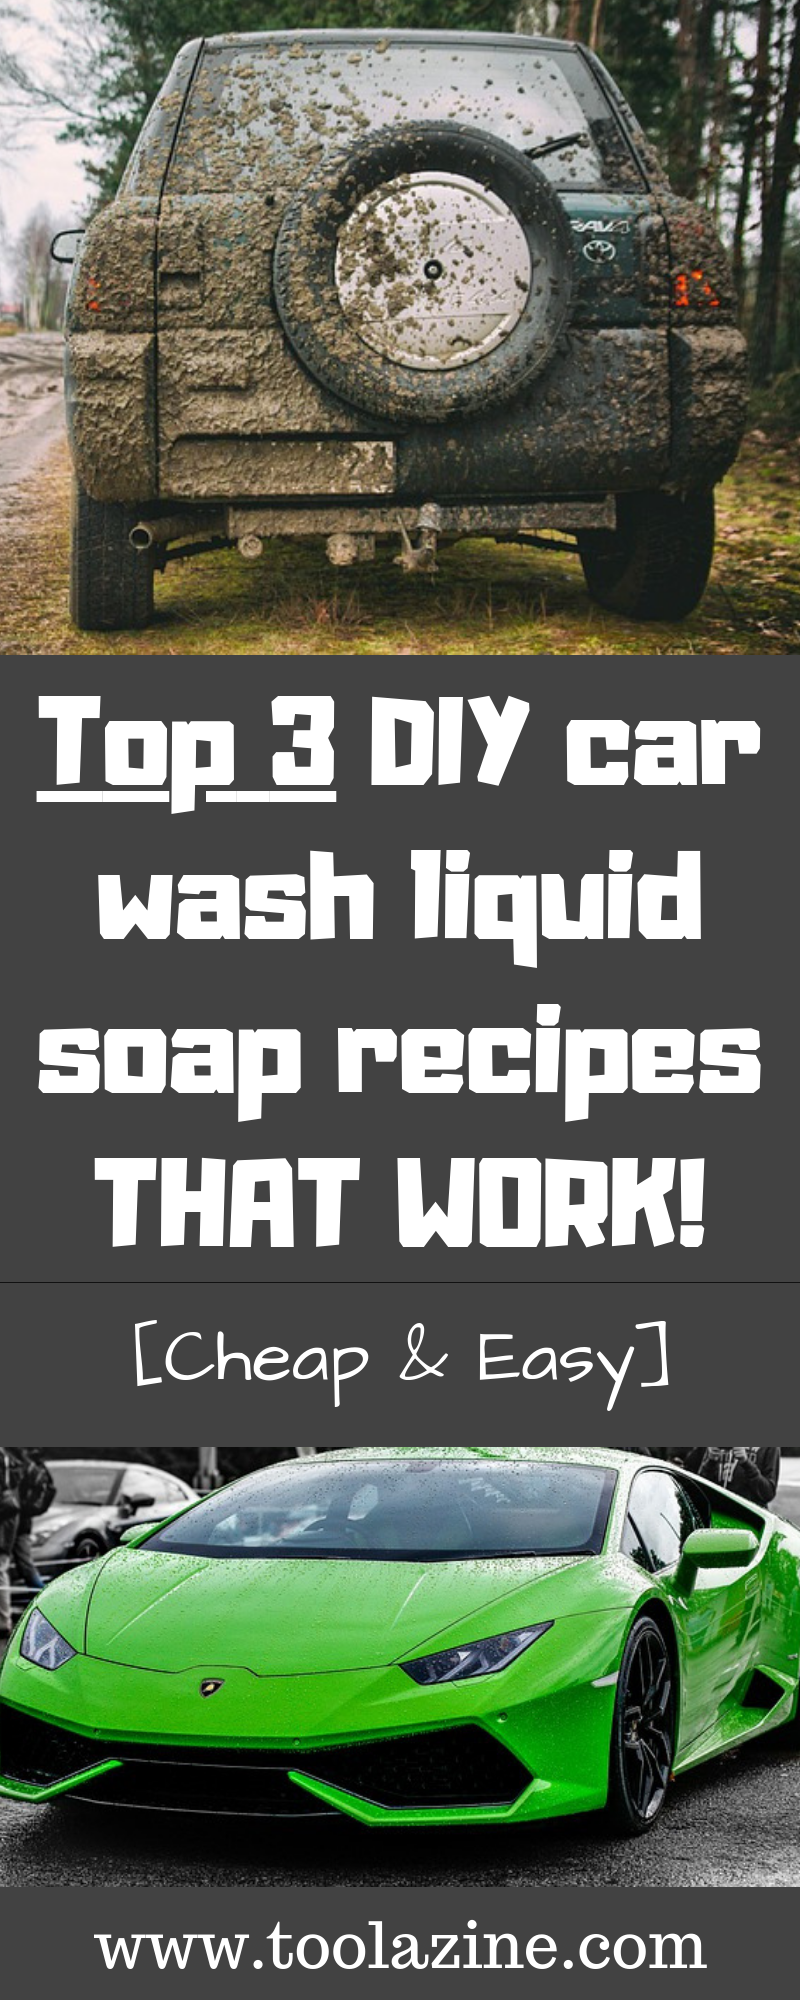 Top 3 DIY car wash liquid soap recipes THAT WORK [Cheap & Easy] #cleaningcars